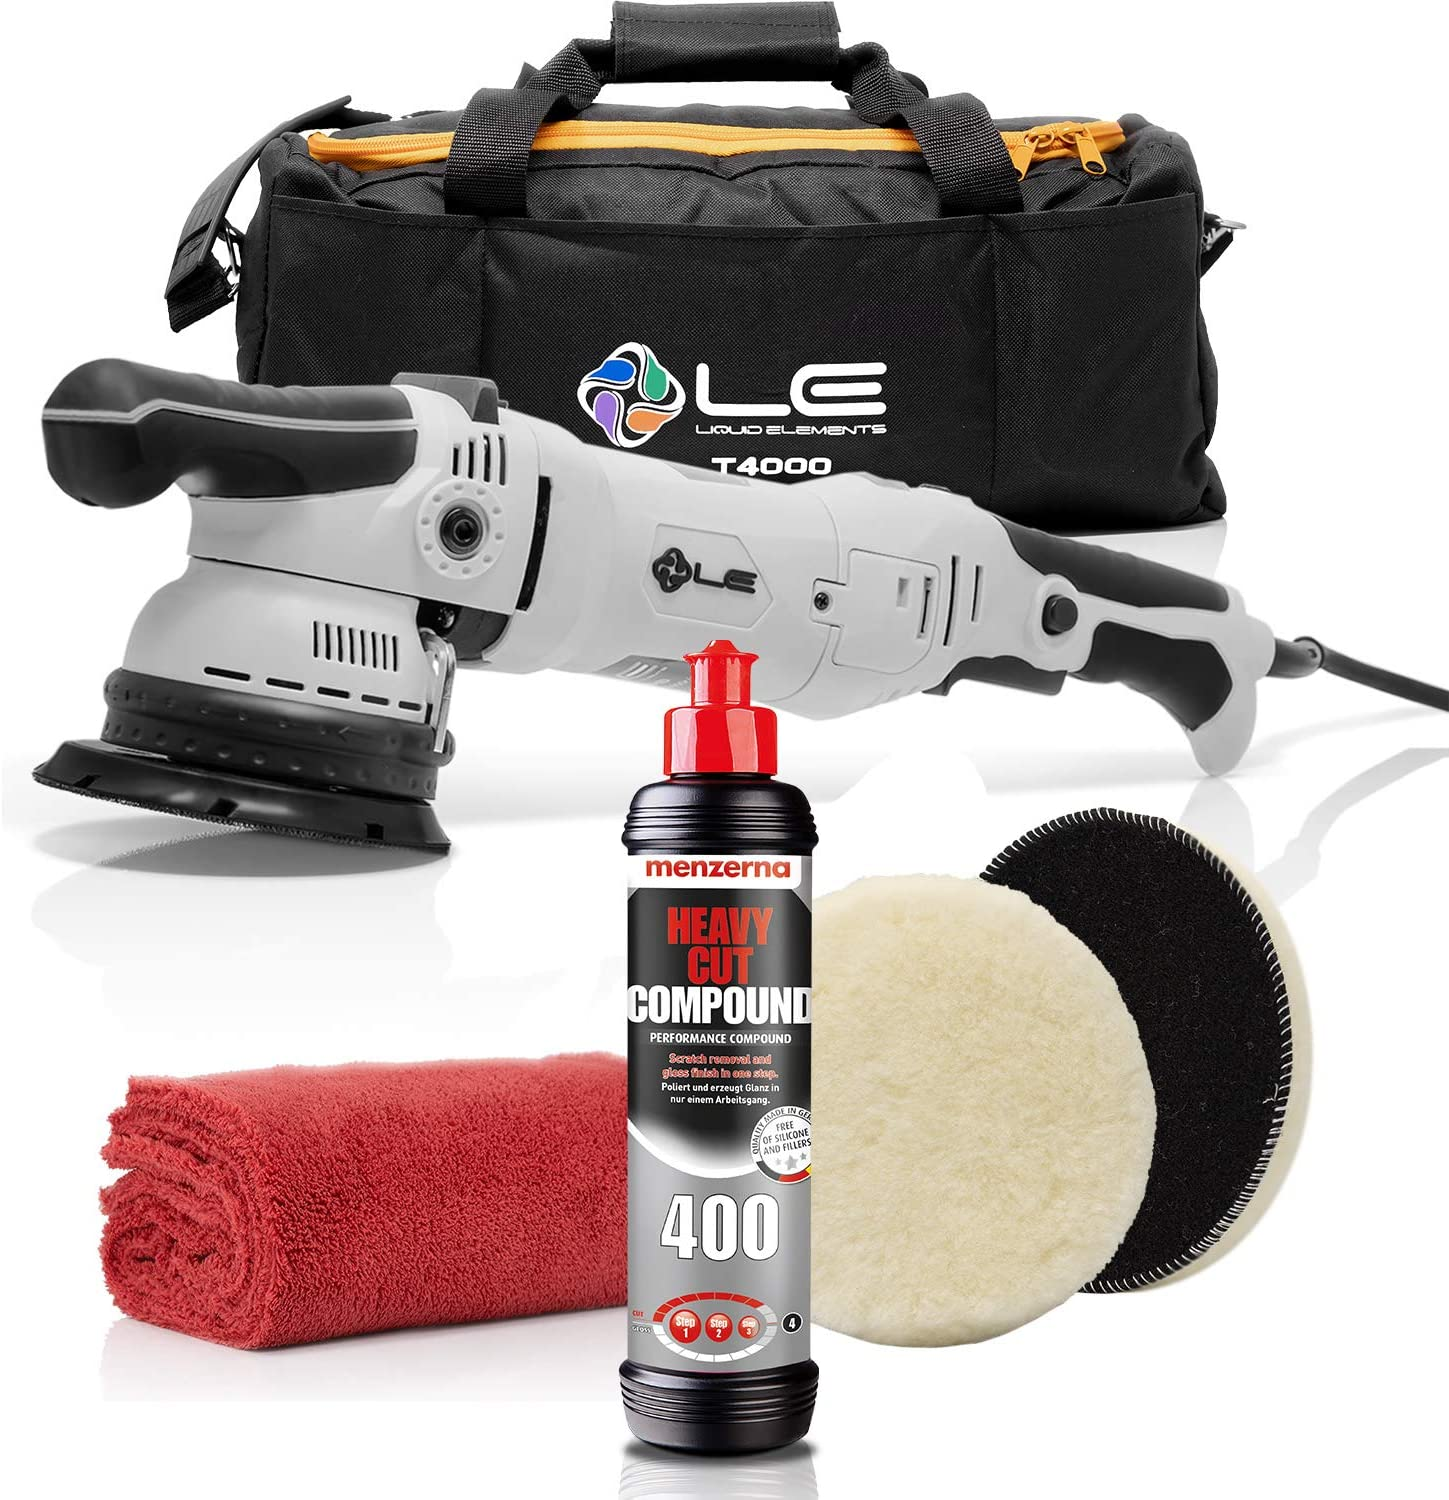 Detailmate Auto Politur Set Liquid Elements T4000 V2 Exzenter Poliermaschine 900 Watt Menzerna Heavy Cut Compound 400 250ml Menzerna Premium Lammfell Pad 150mm Mikrofasertuch 550gsm Auto